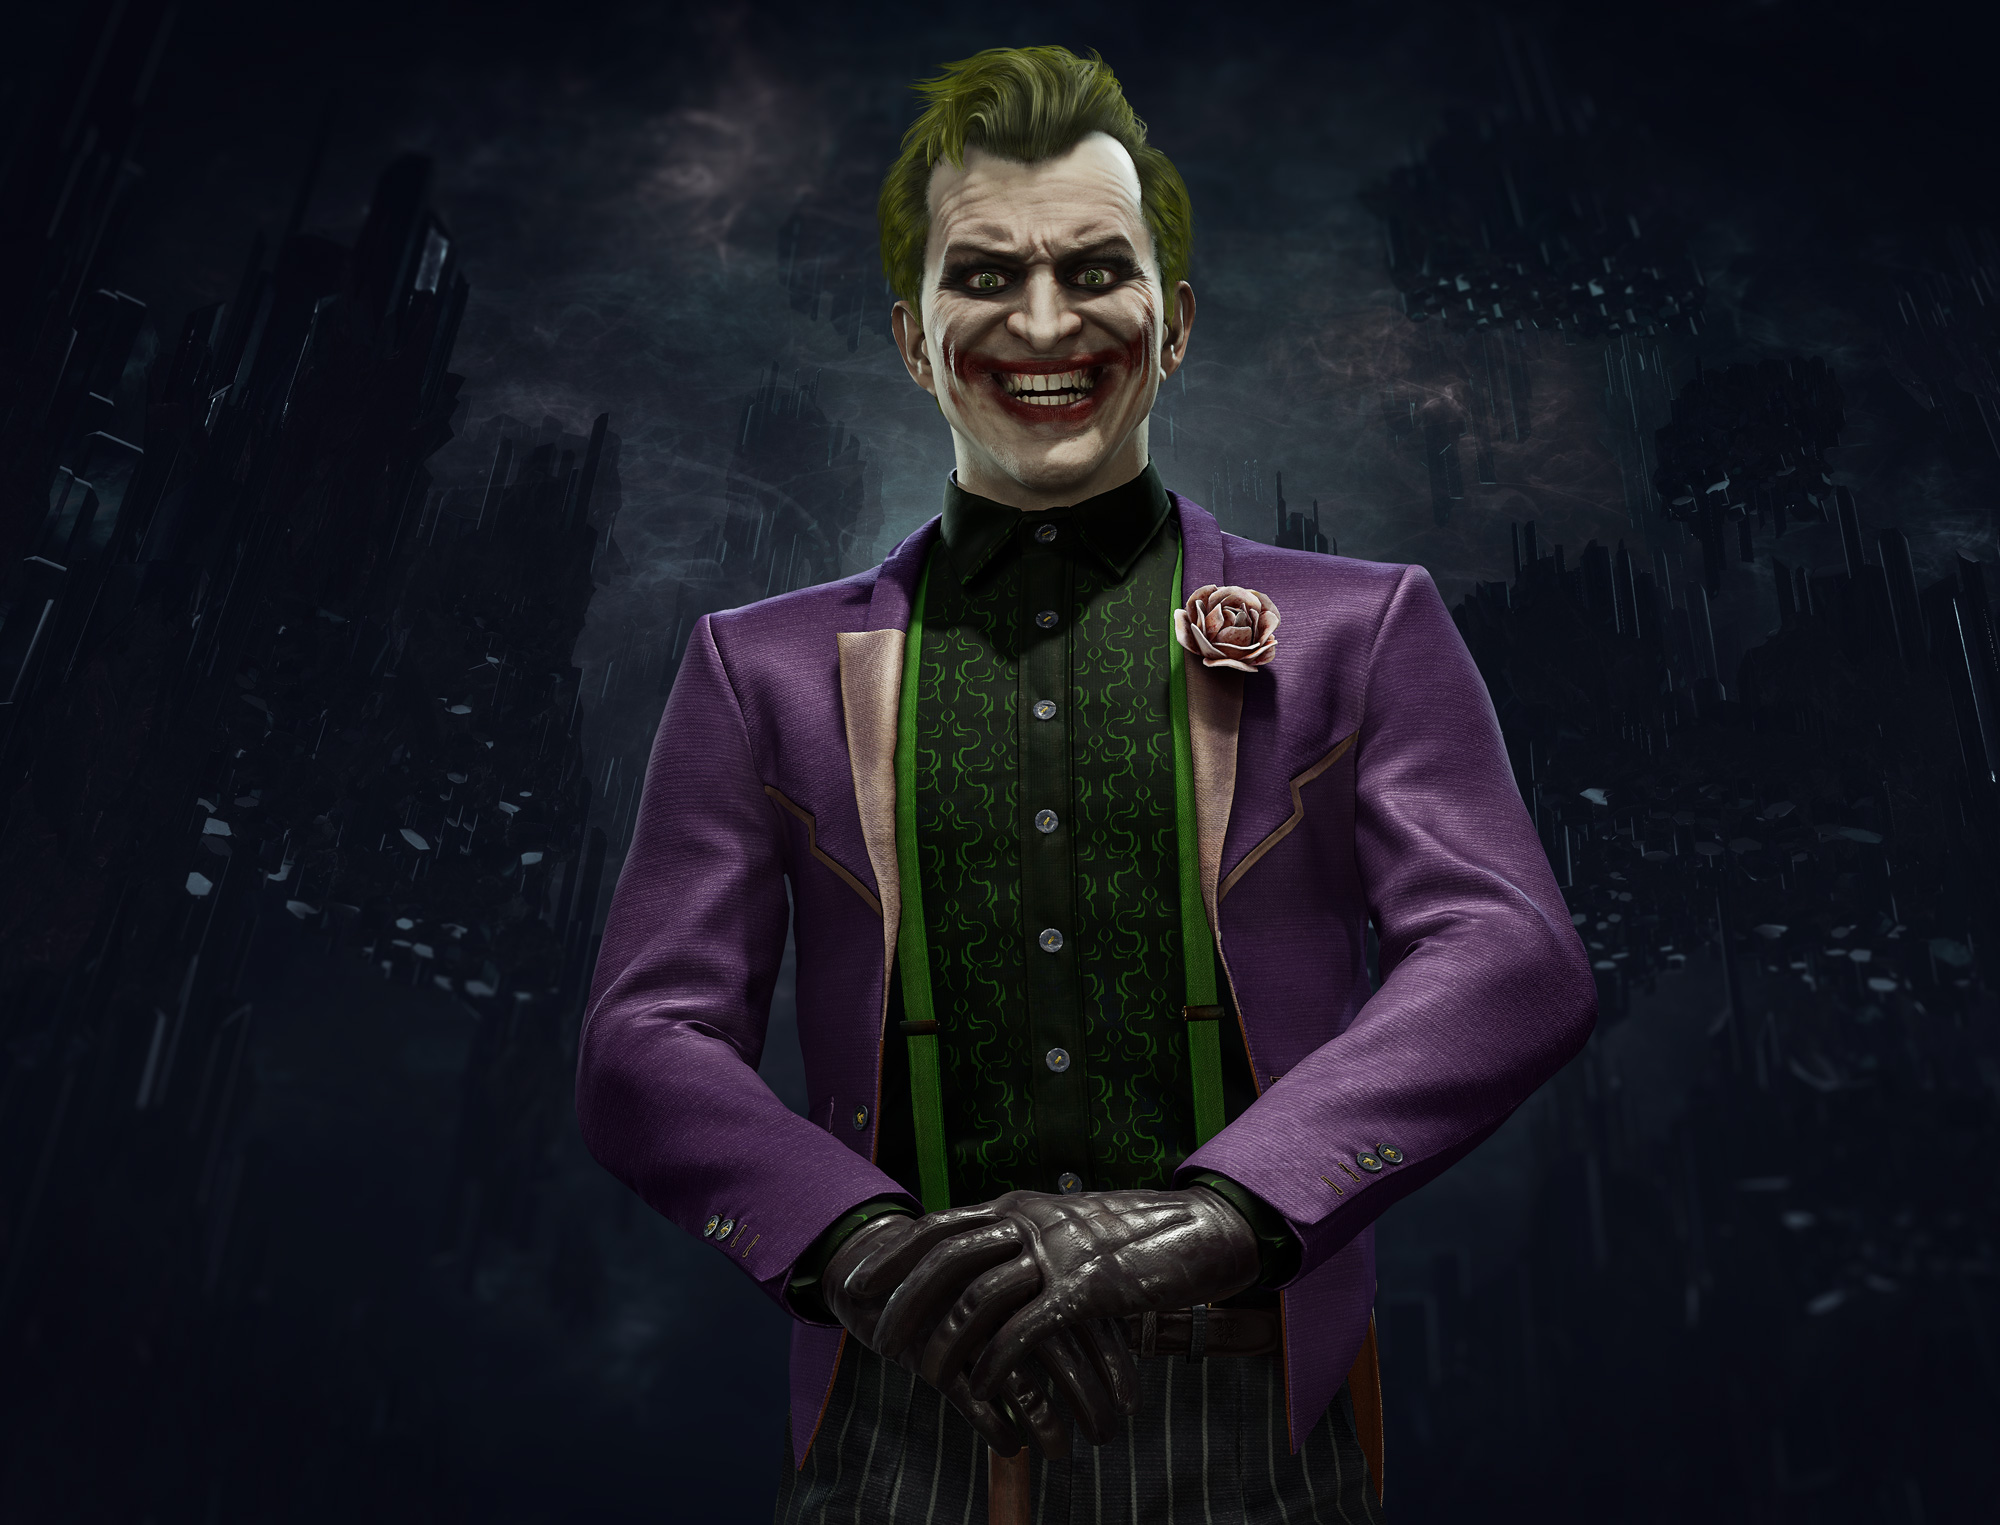 Video Game Joker Mk 11 Mortal Kombat 11 Wallpaper